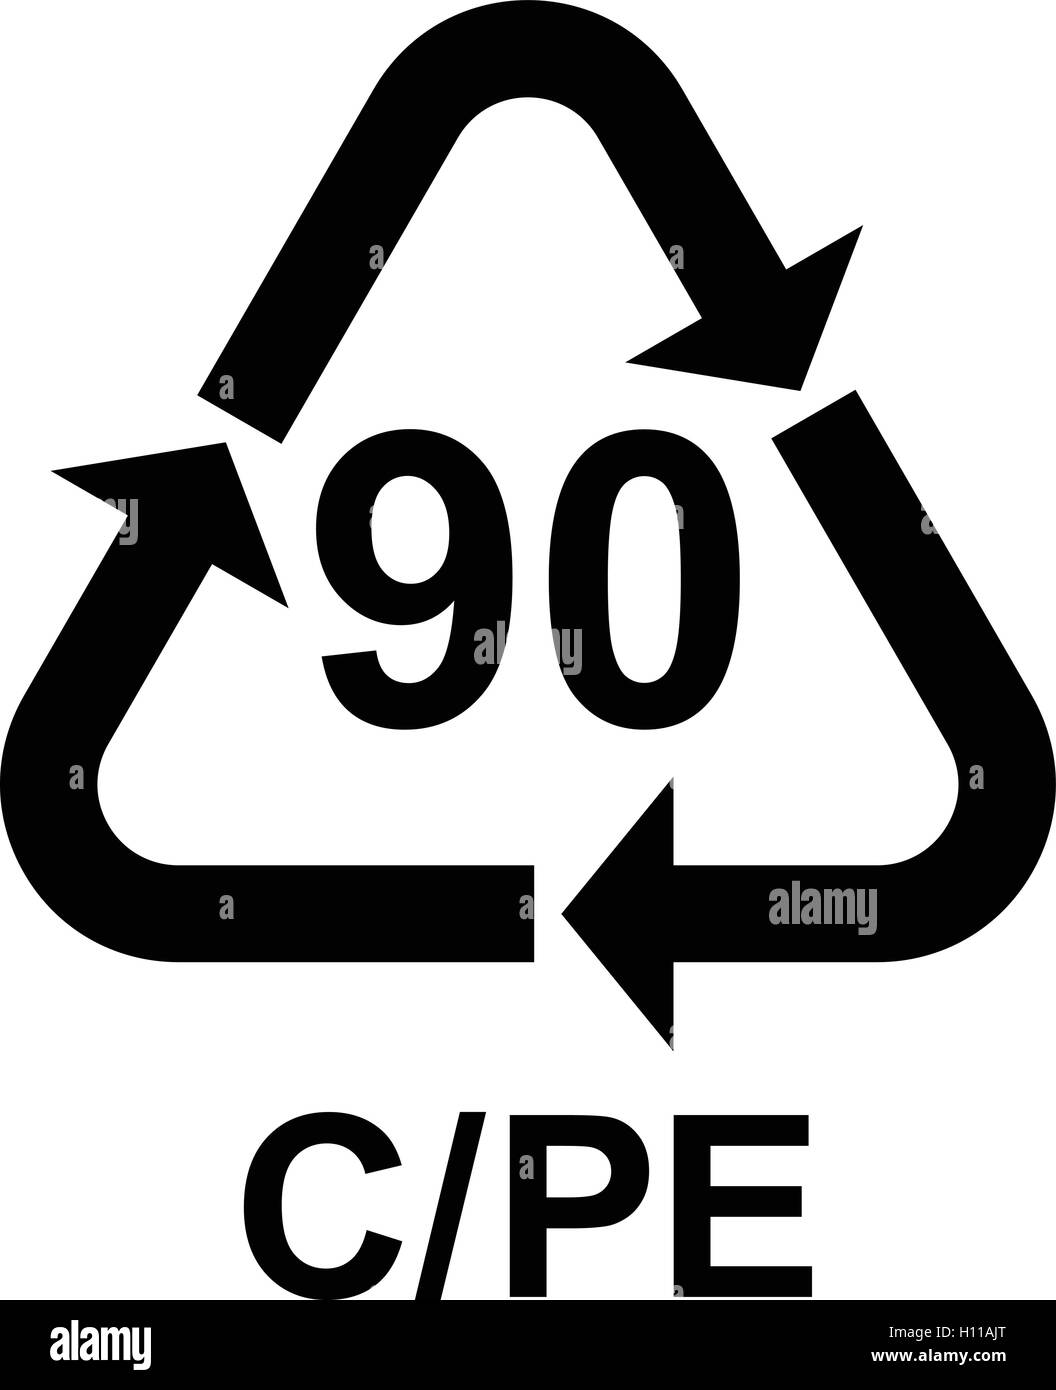 Composites recycling symbol C/PE 90, Plastic recycling code C/PE 90, vector illustration. - Stock Image